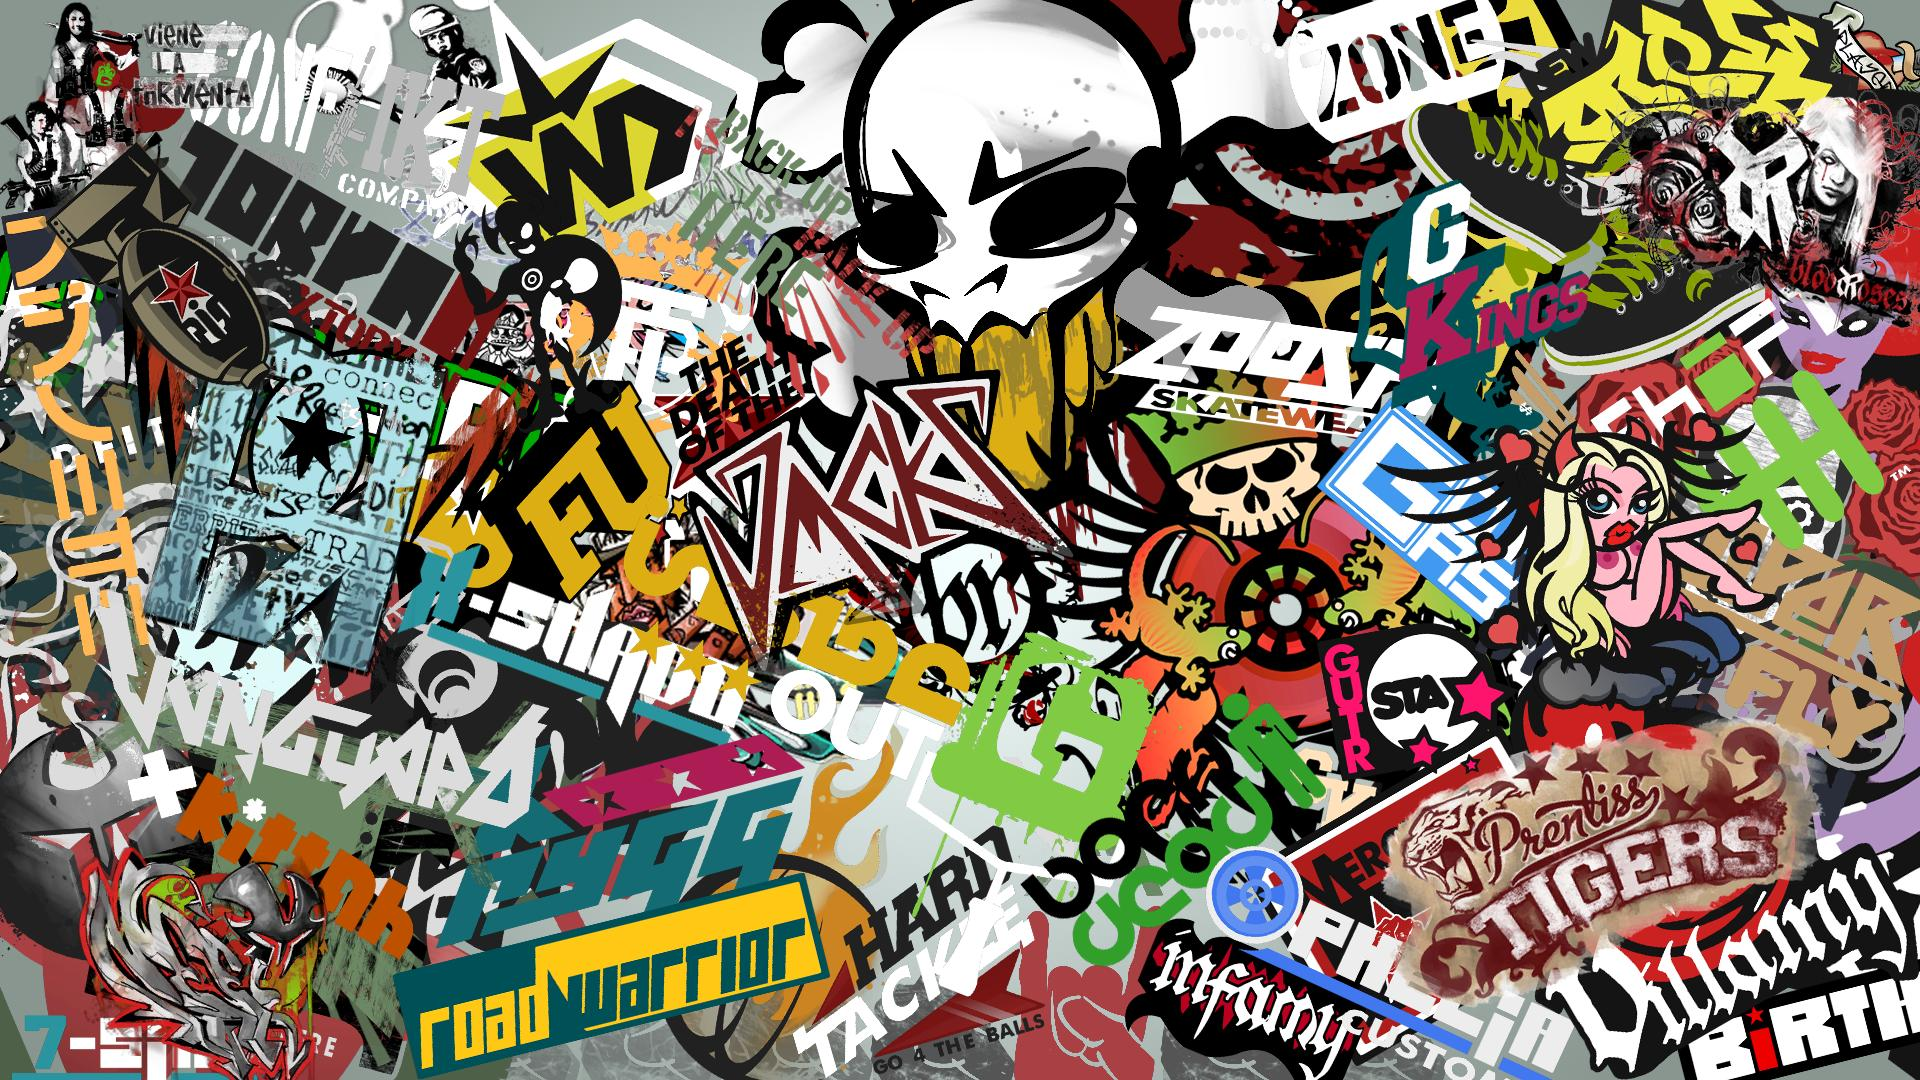 Exceptional Sticker Bomb Wallpaper Images U0026 Pictures   Becuo